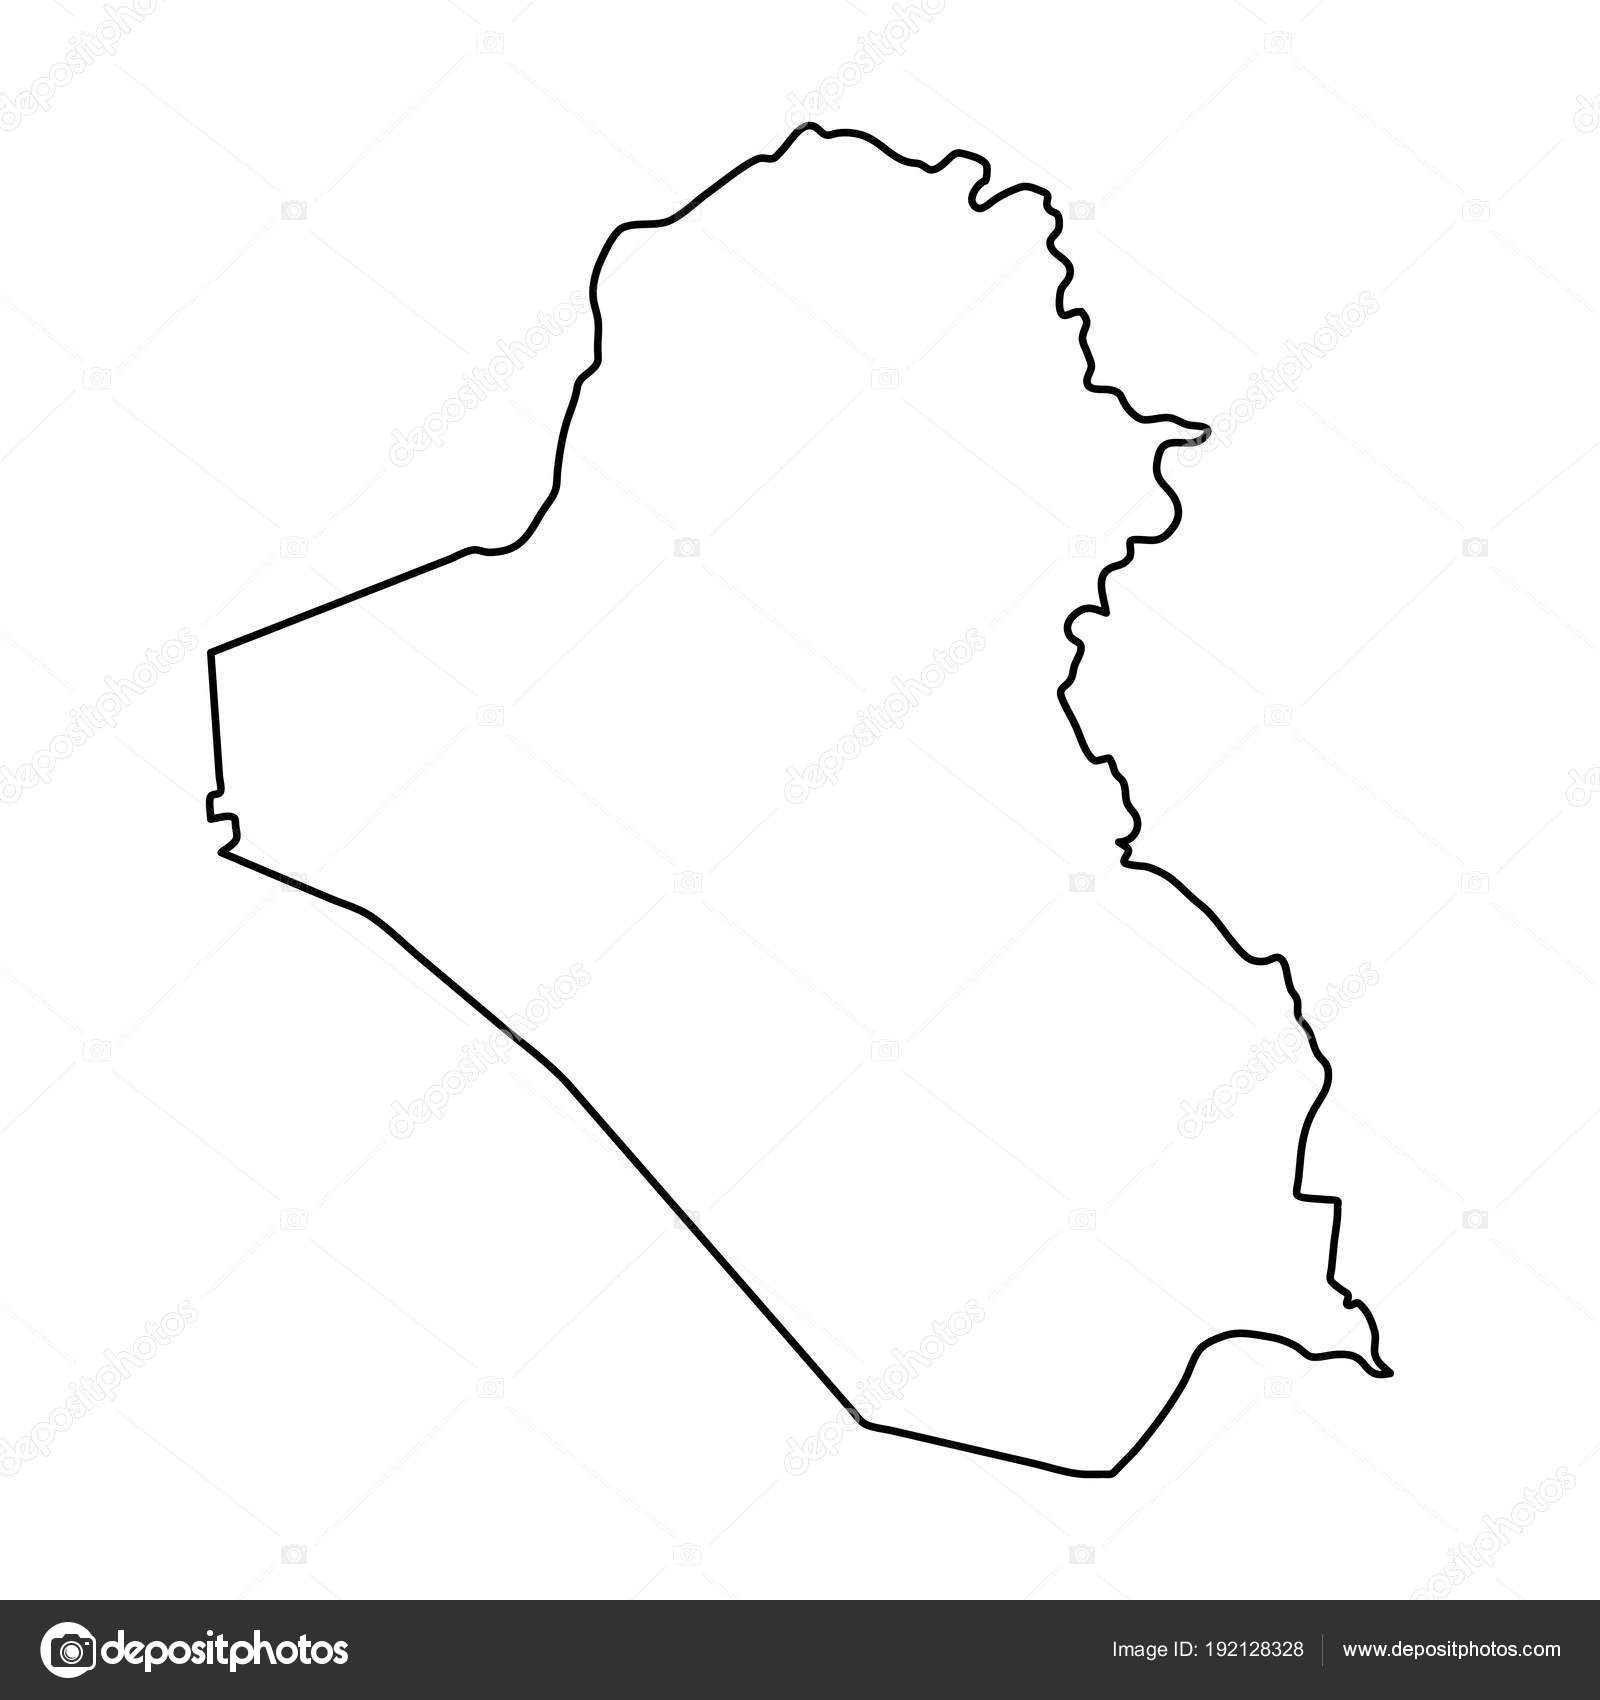 Iraq map of black contour curves on white background of